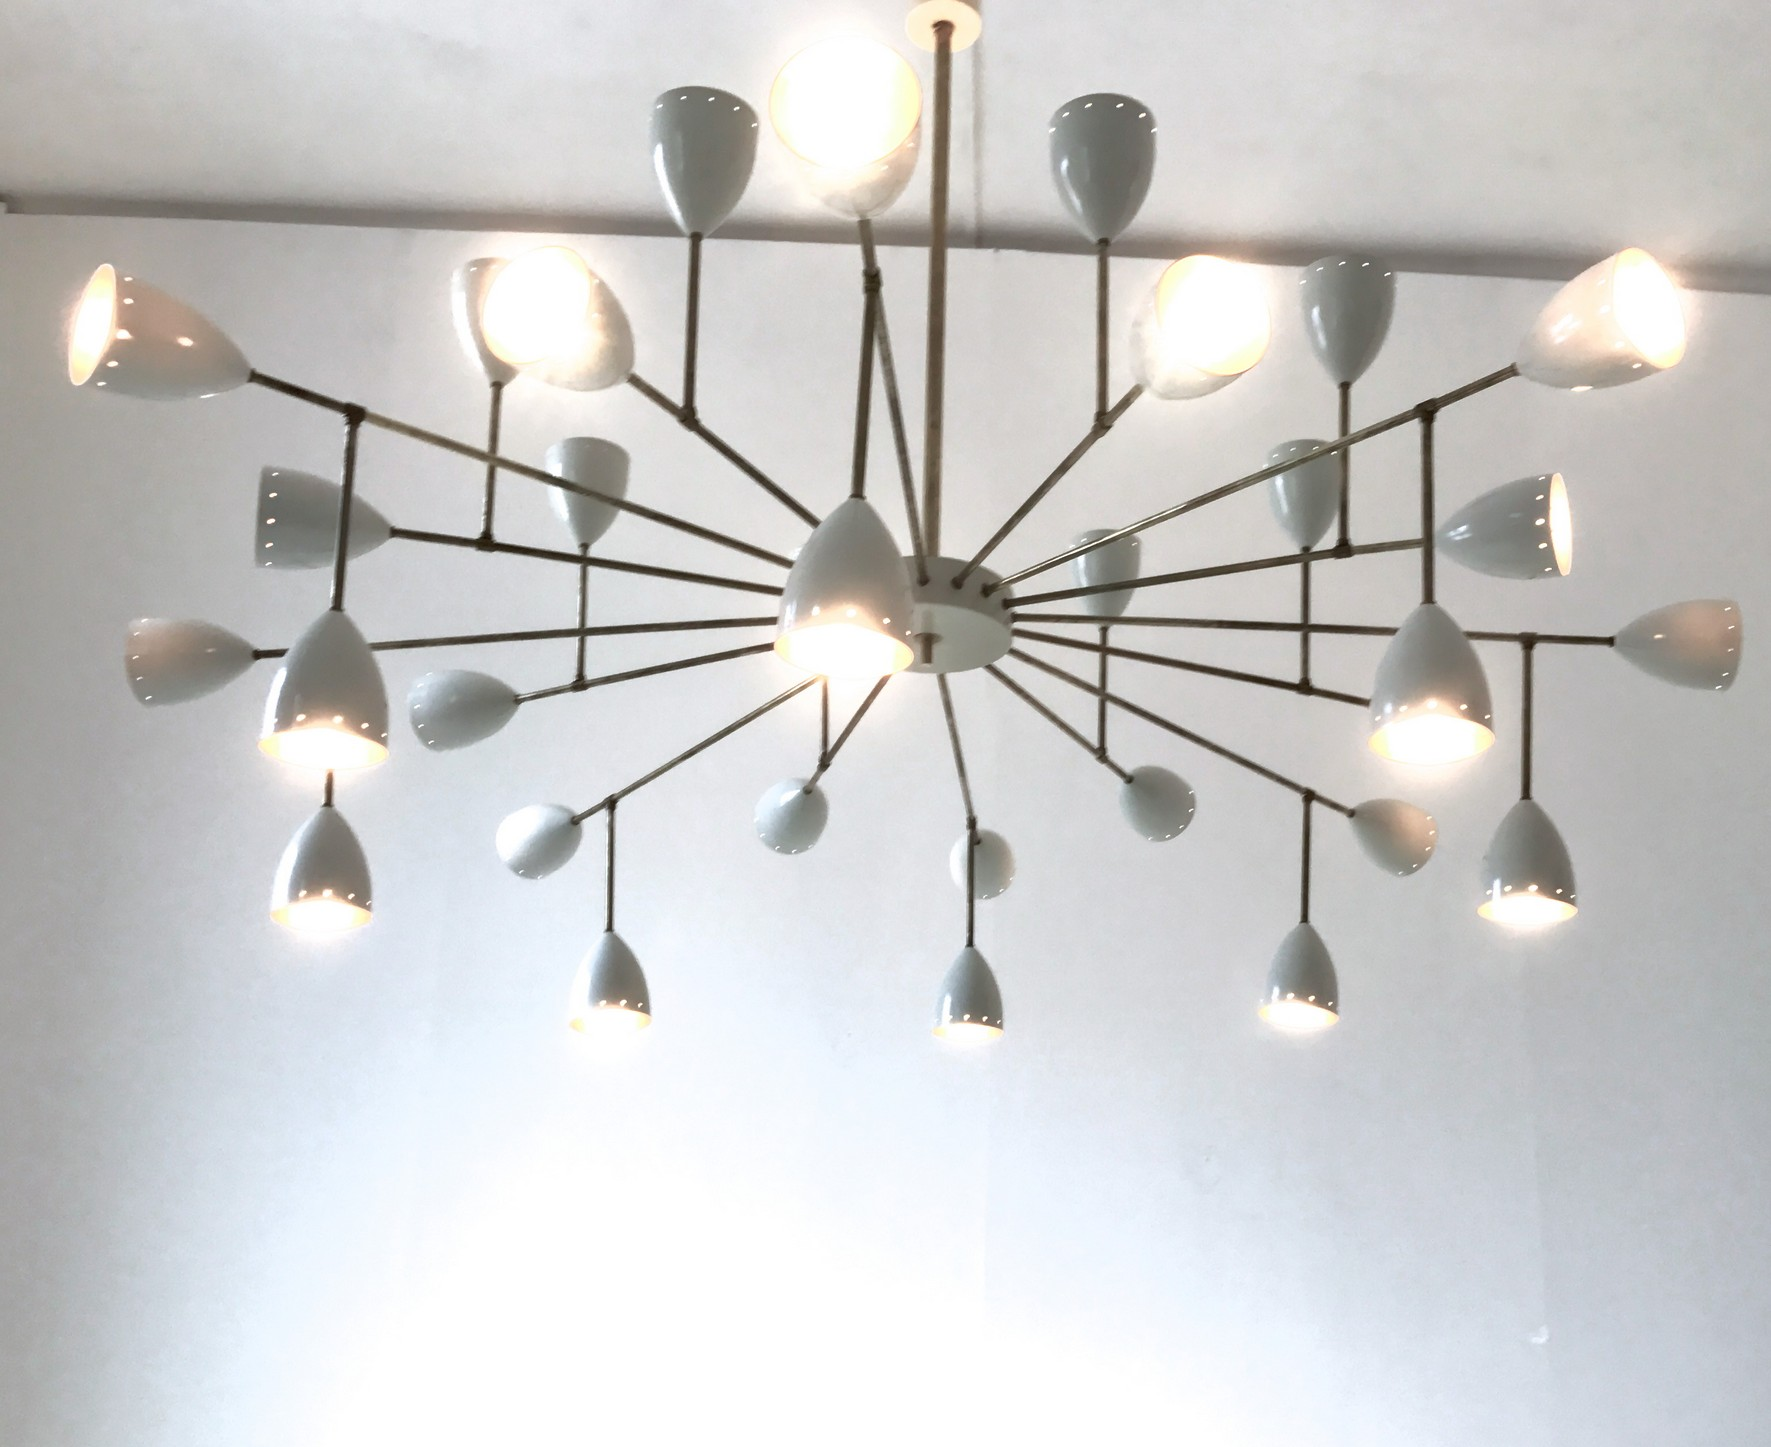 Branching Chandelier, Ivory or Black Shades, Gold Inside in the ...